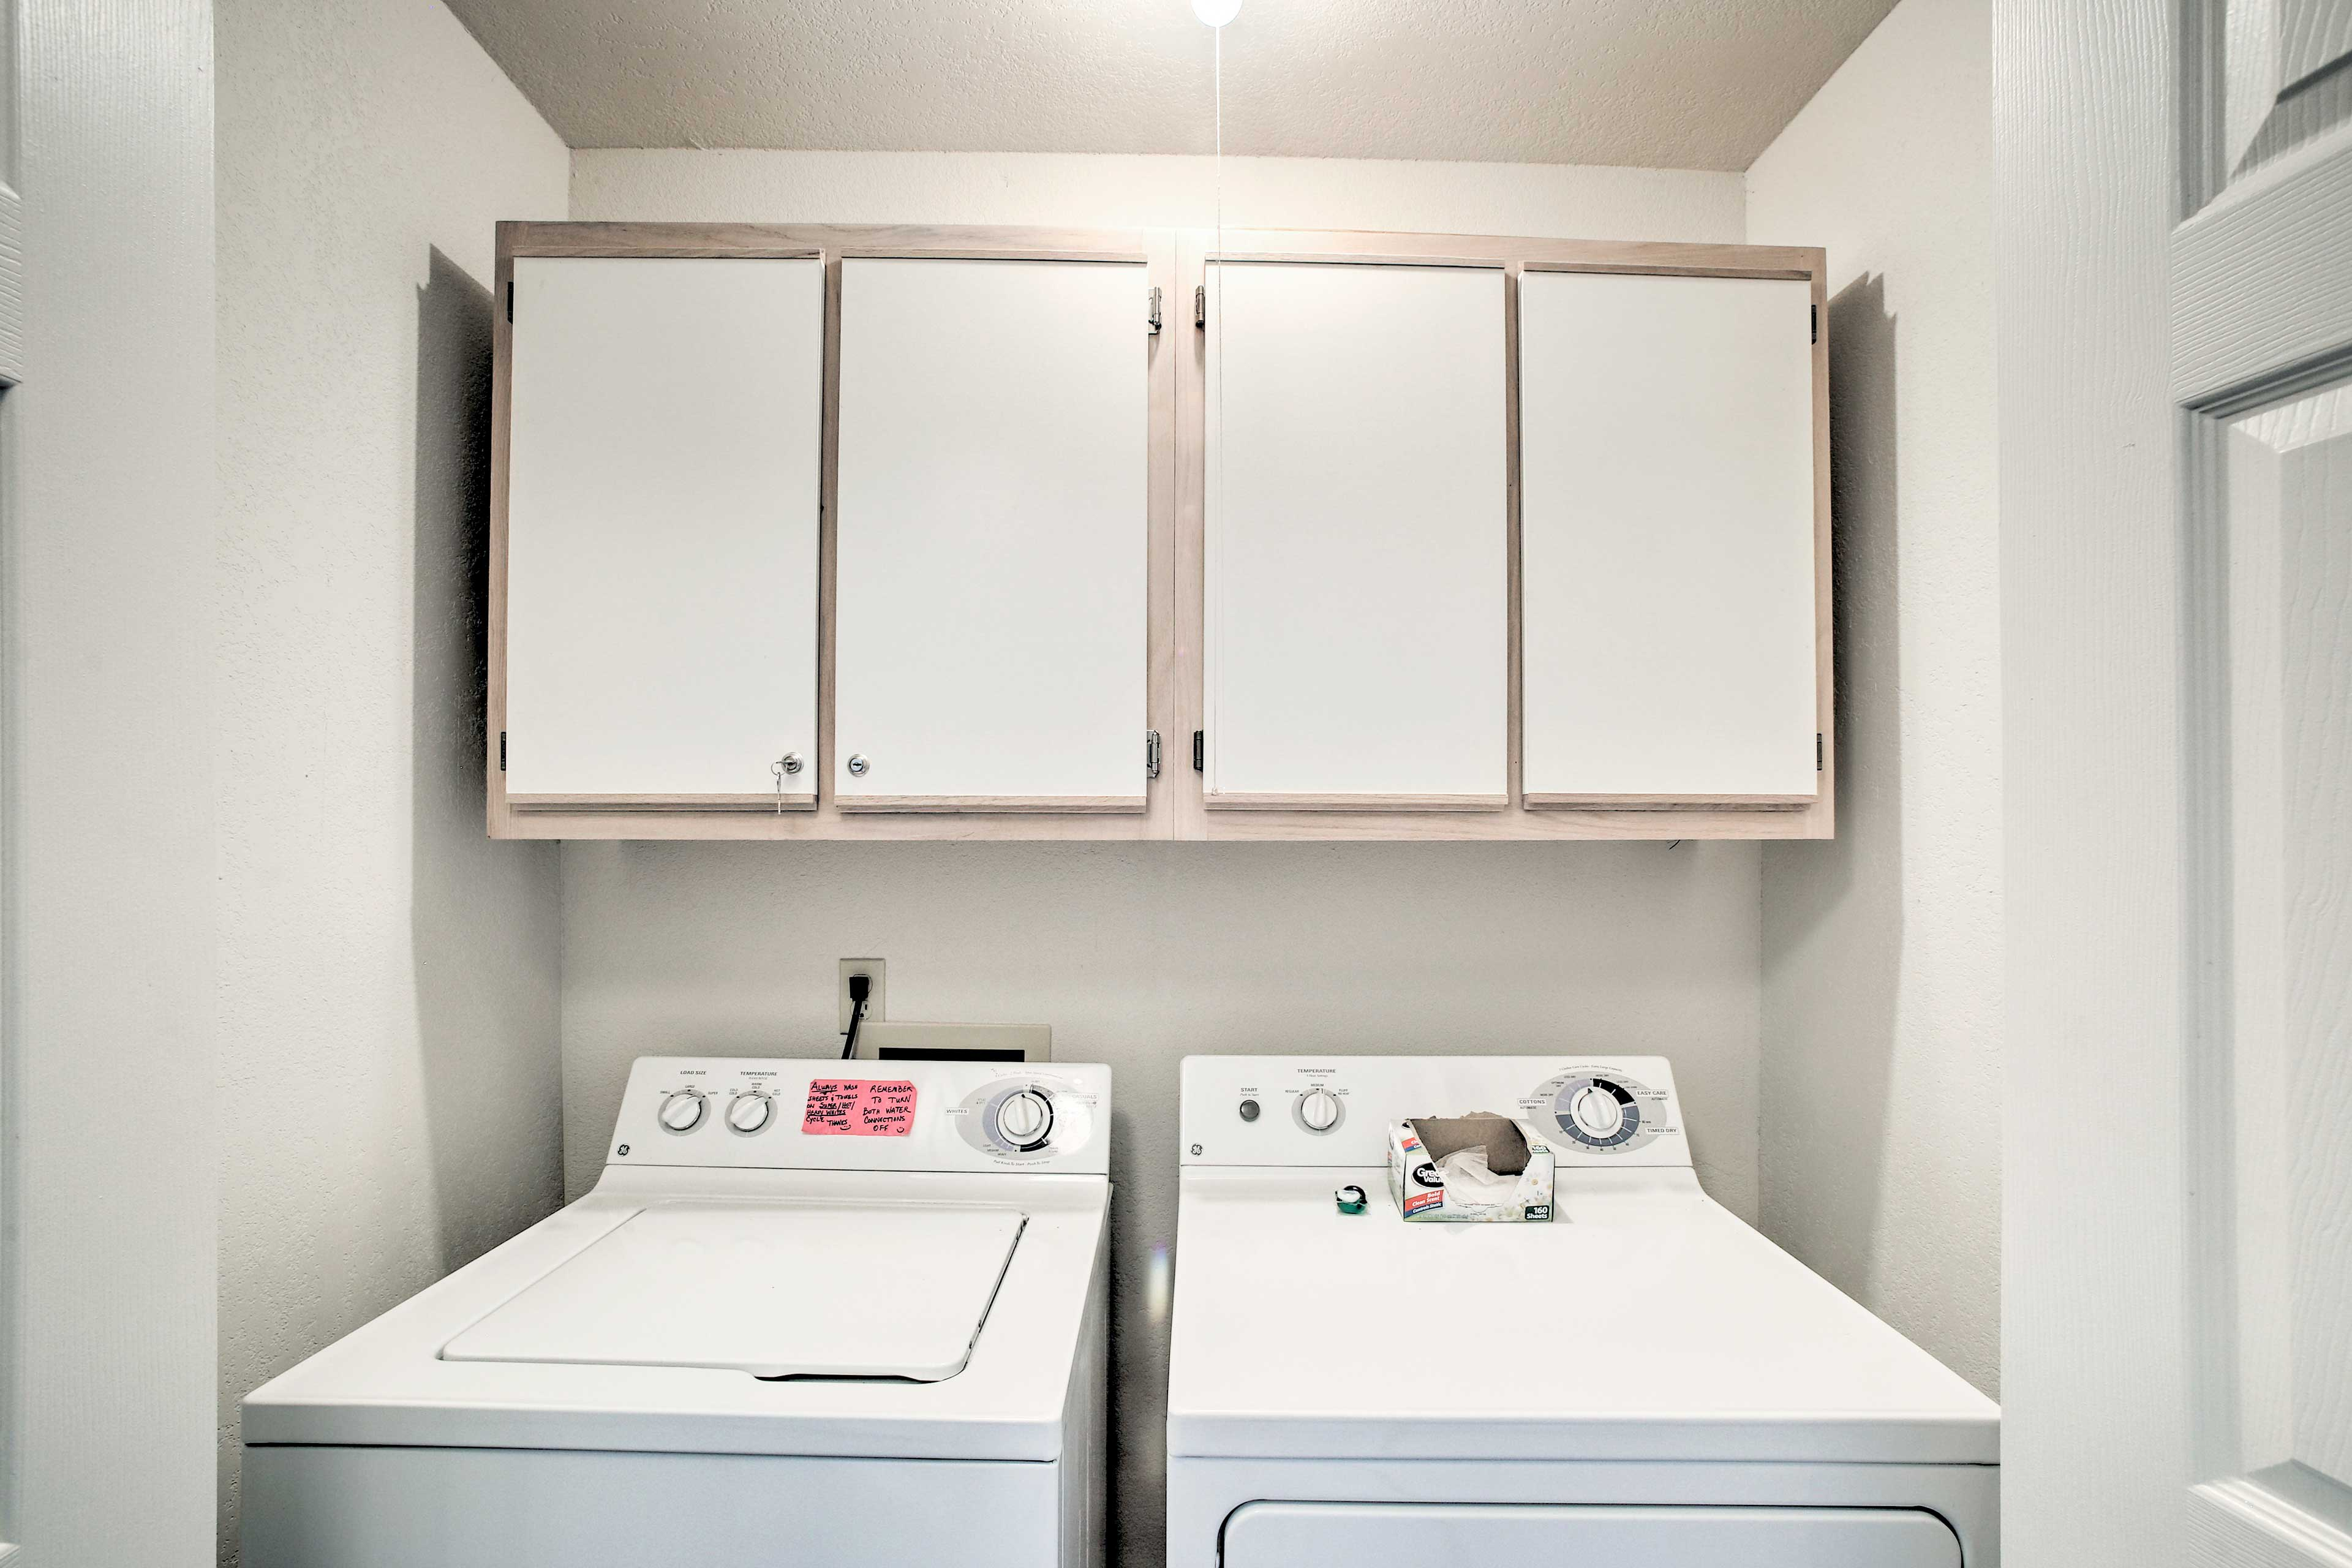 Pack light with the convience of the in-unit washer and dryer.